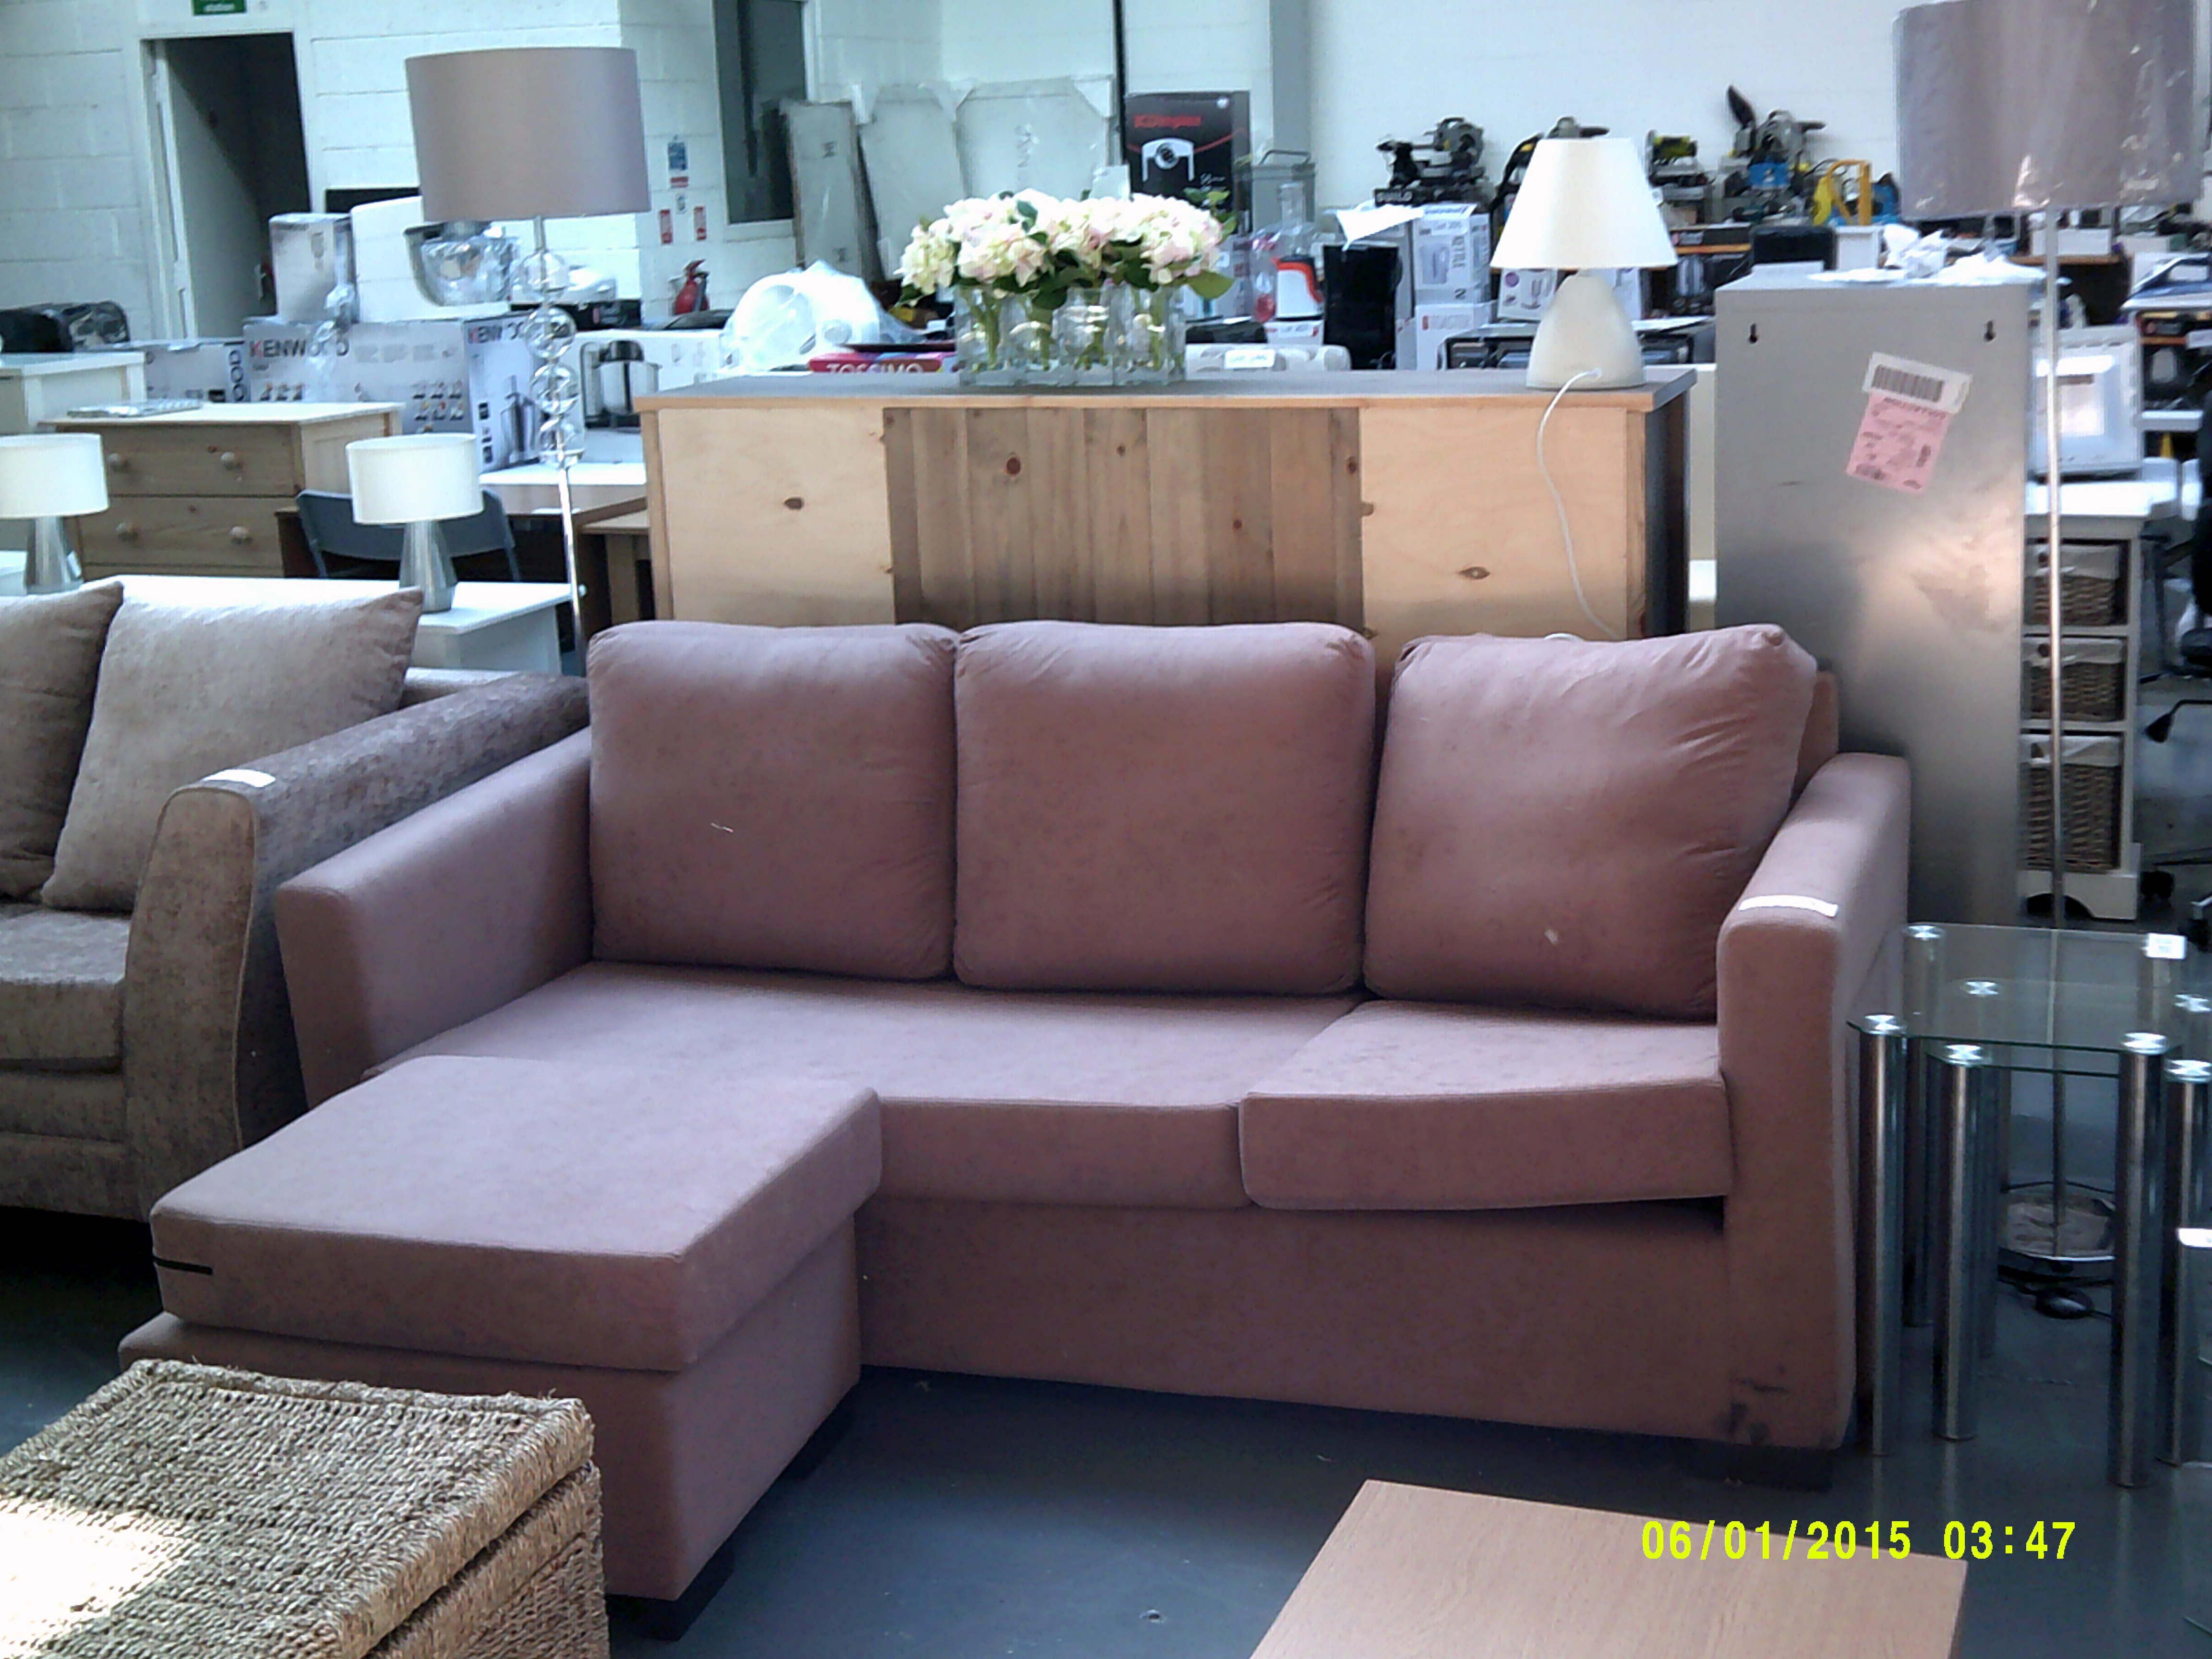 Lot 23 - 3 Seater Sofa with Foot Stool ORP £1429 Customer Returns